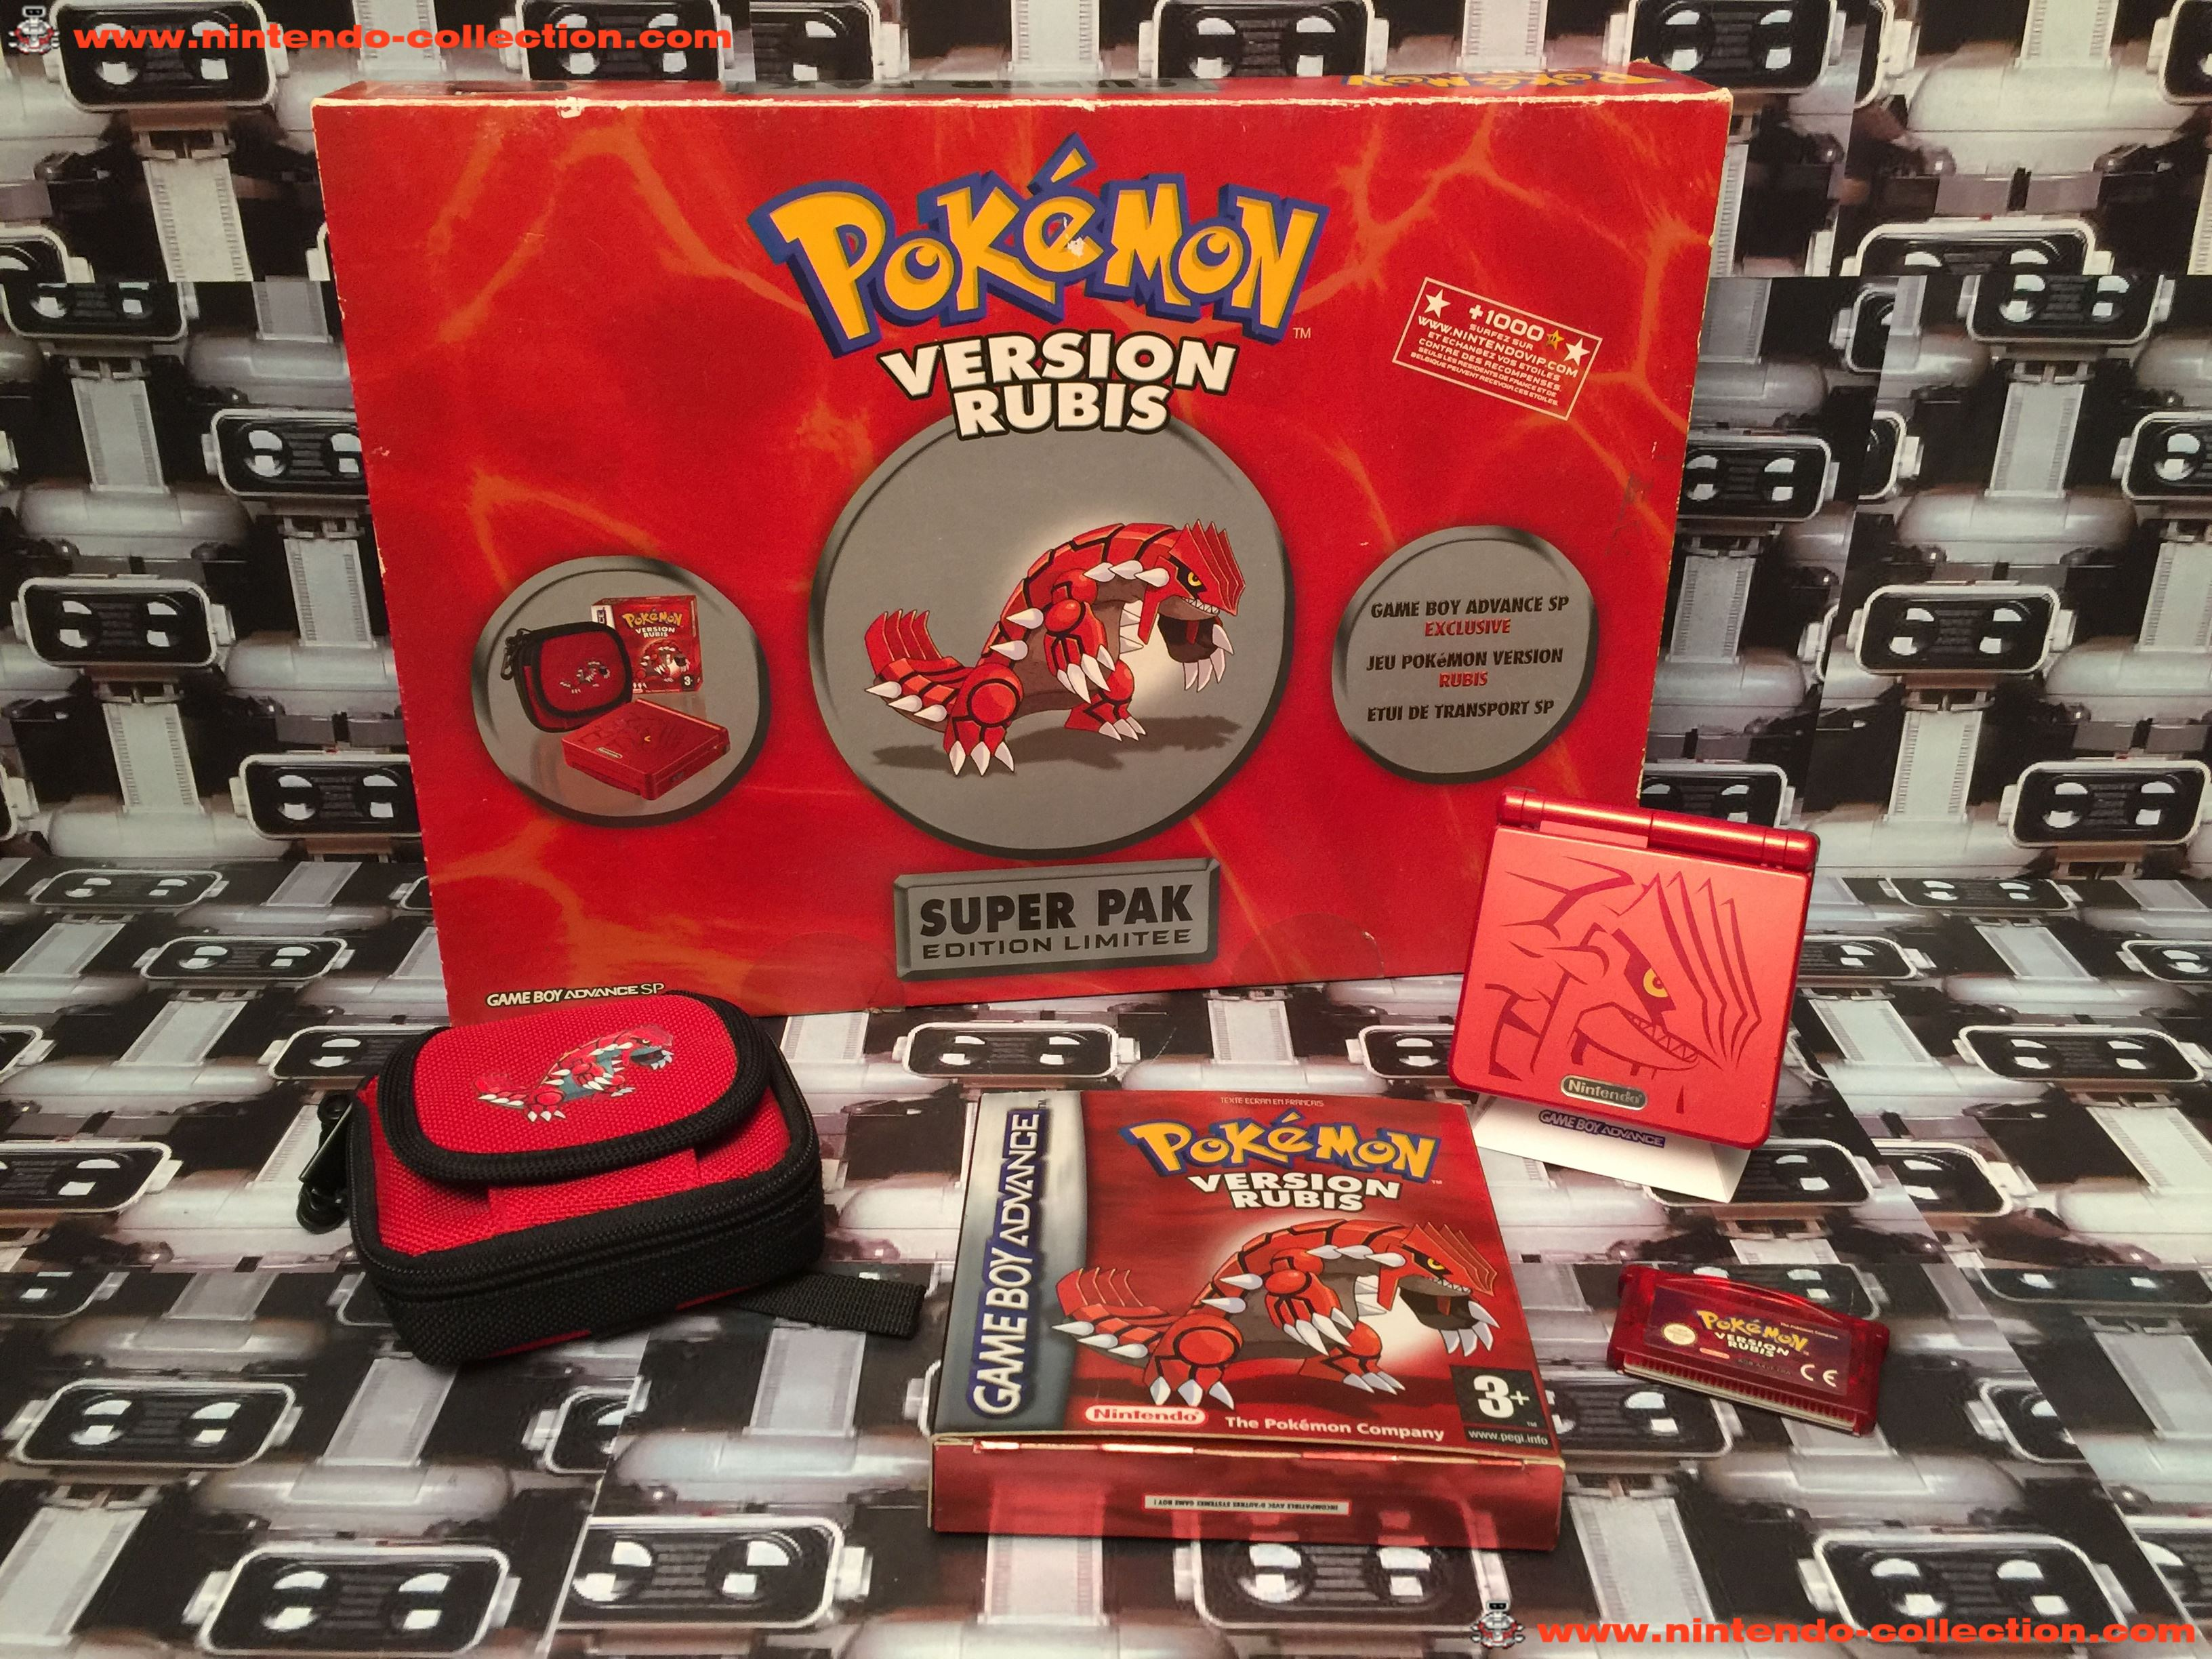 www.nintendo-collection.com - Gameboy Advance SP Super Pack Collector Pokemon Version Rubis - 03